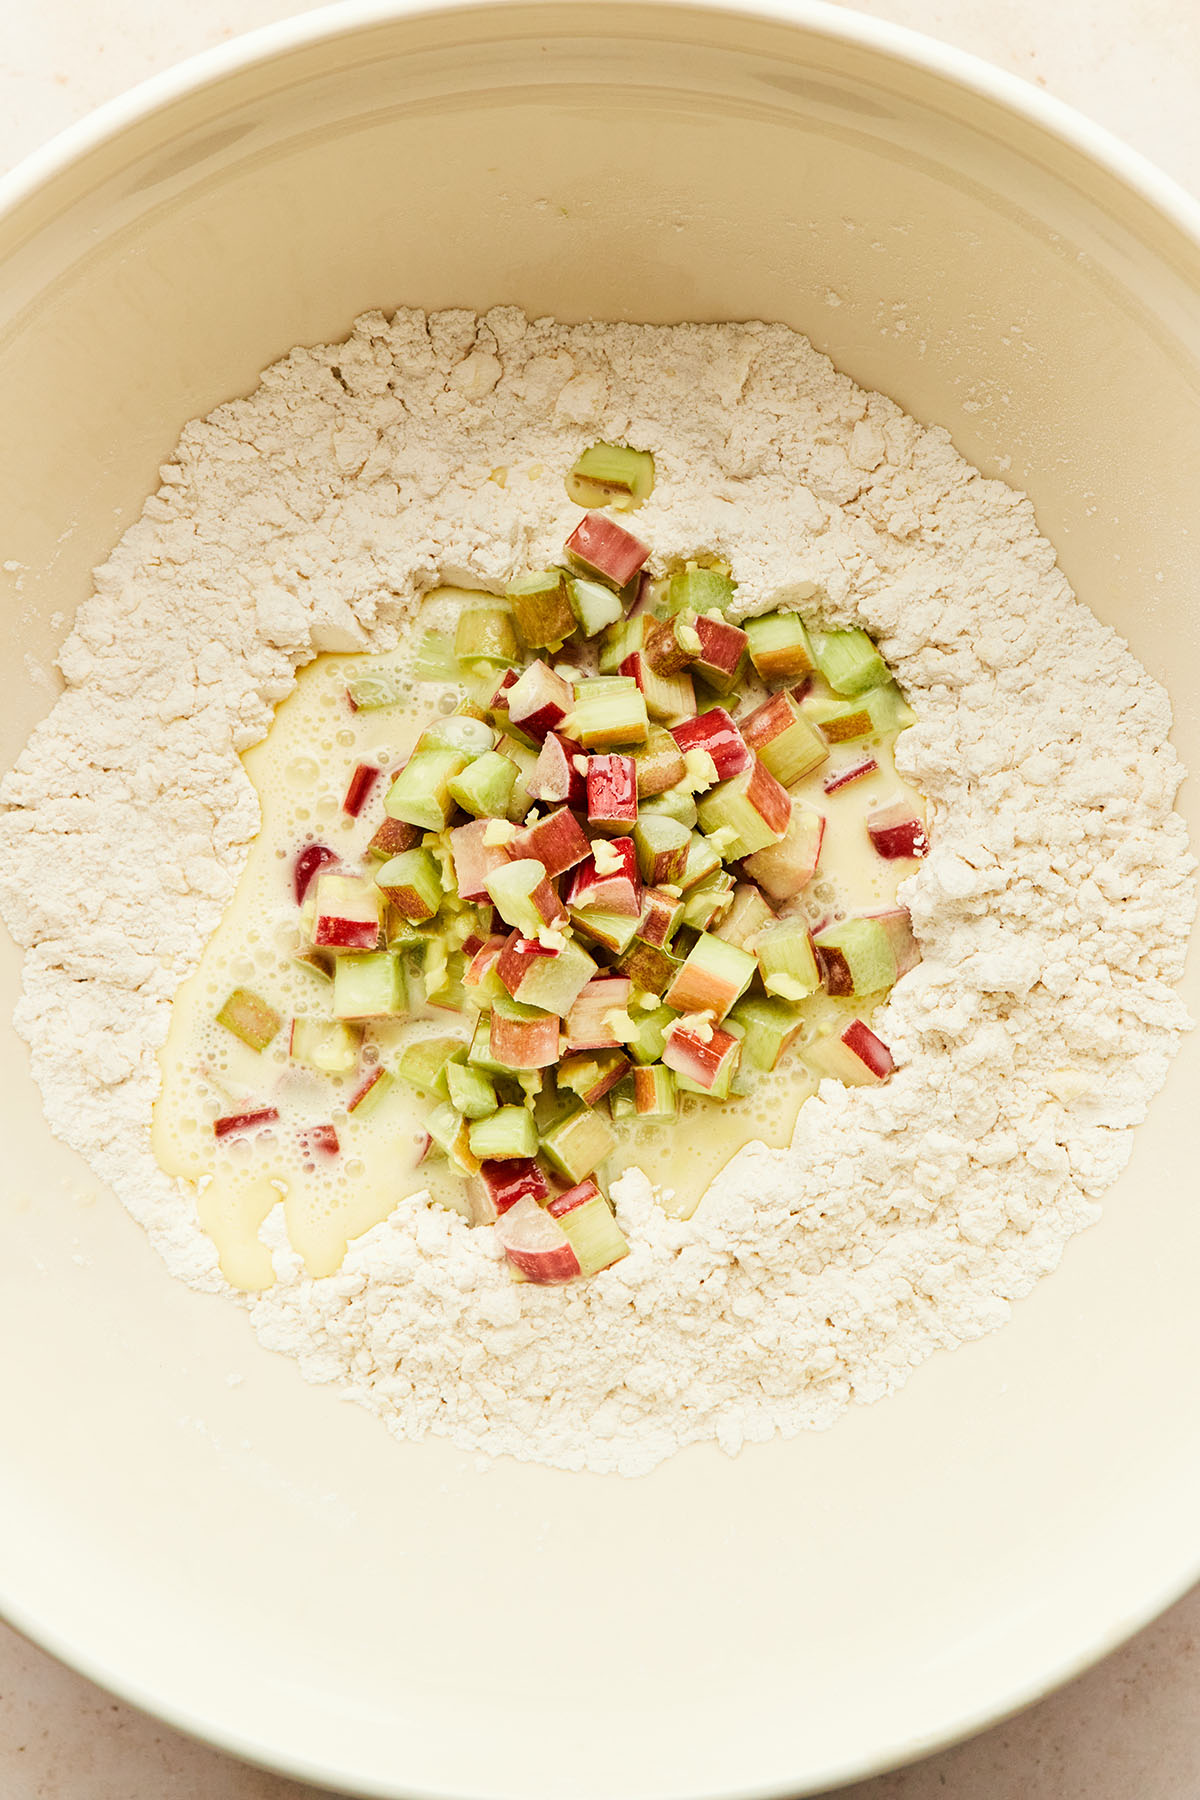 A bowl of flour with an egg-cream-rhubarb mixture in the middle to be folded in.